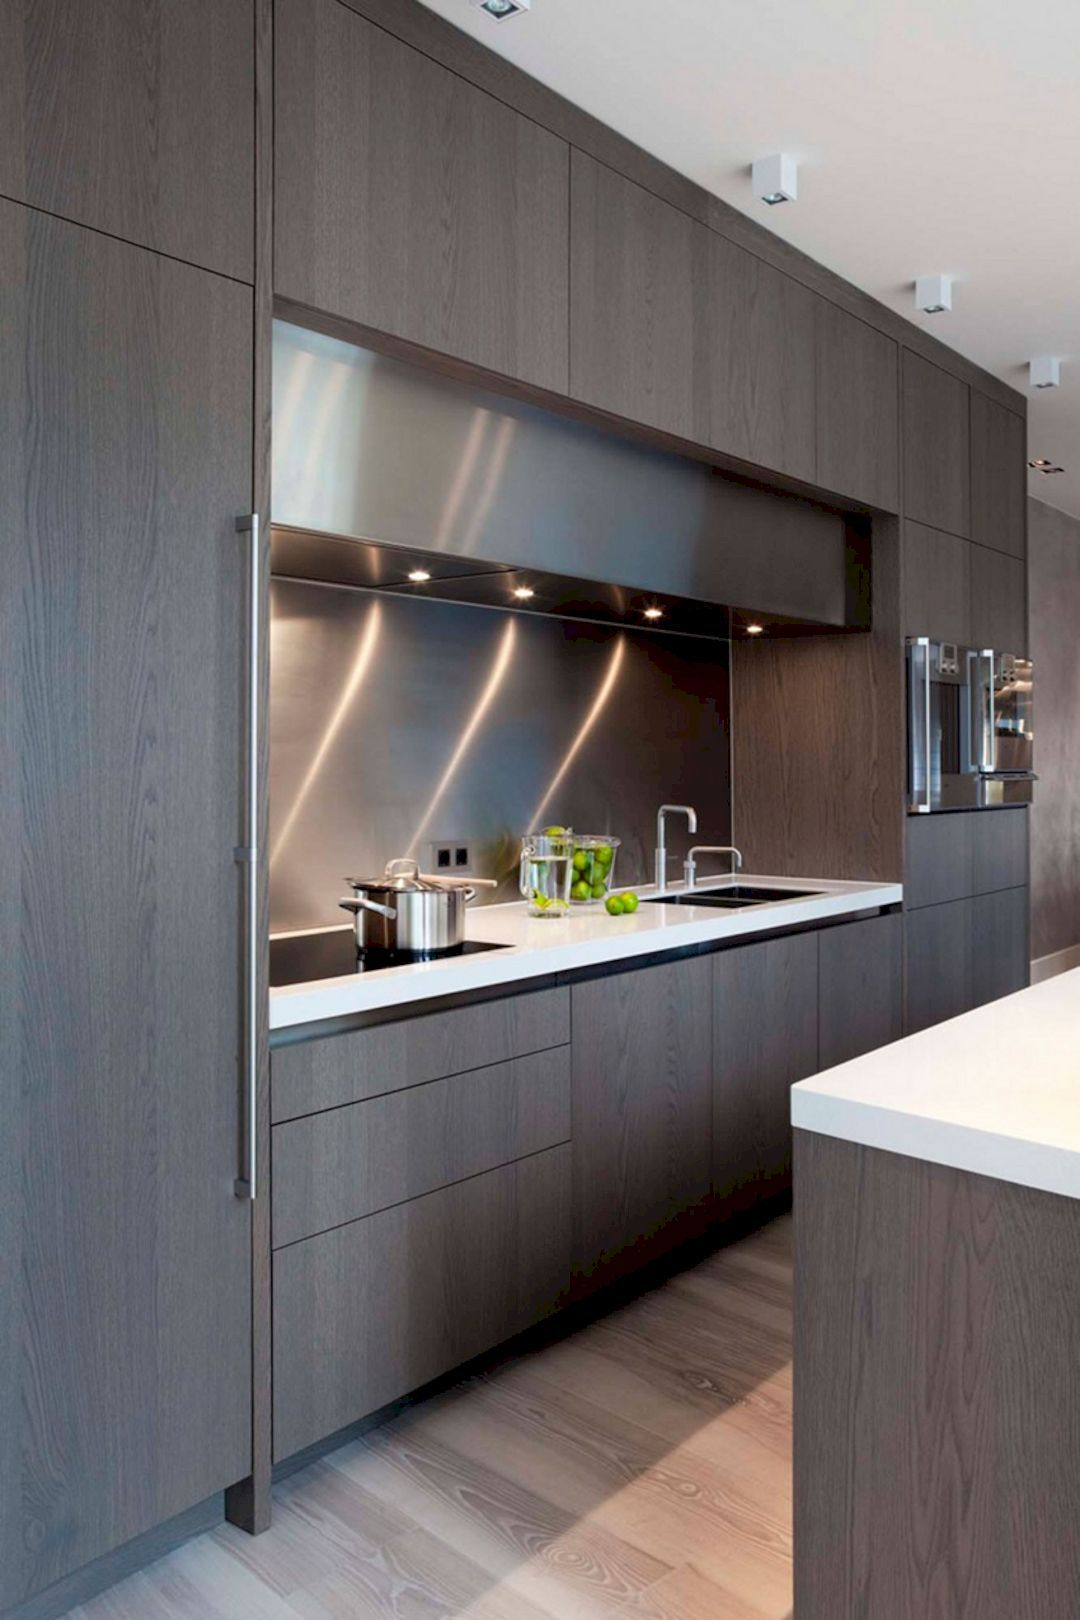 Attirant Stylish Modern Kitchen Cabinet: 127 Design Ideas  Https://www.futuristarchitecture.